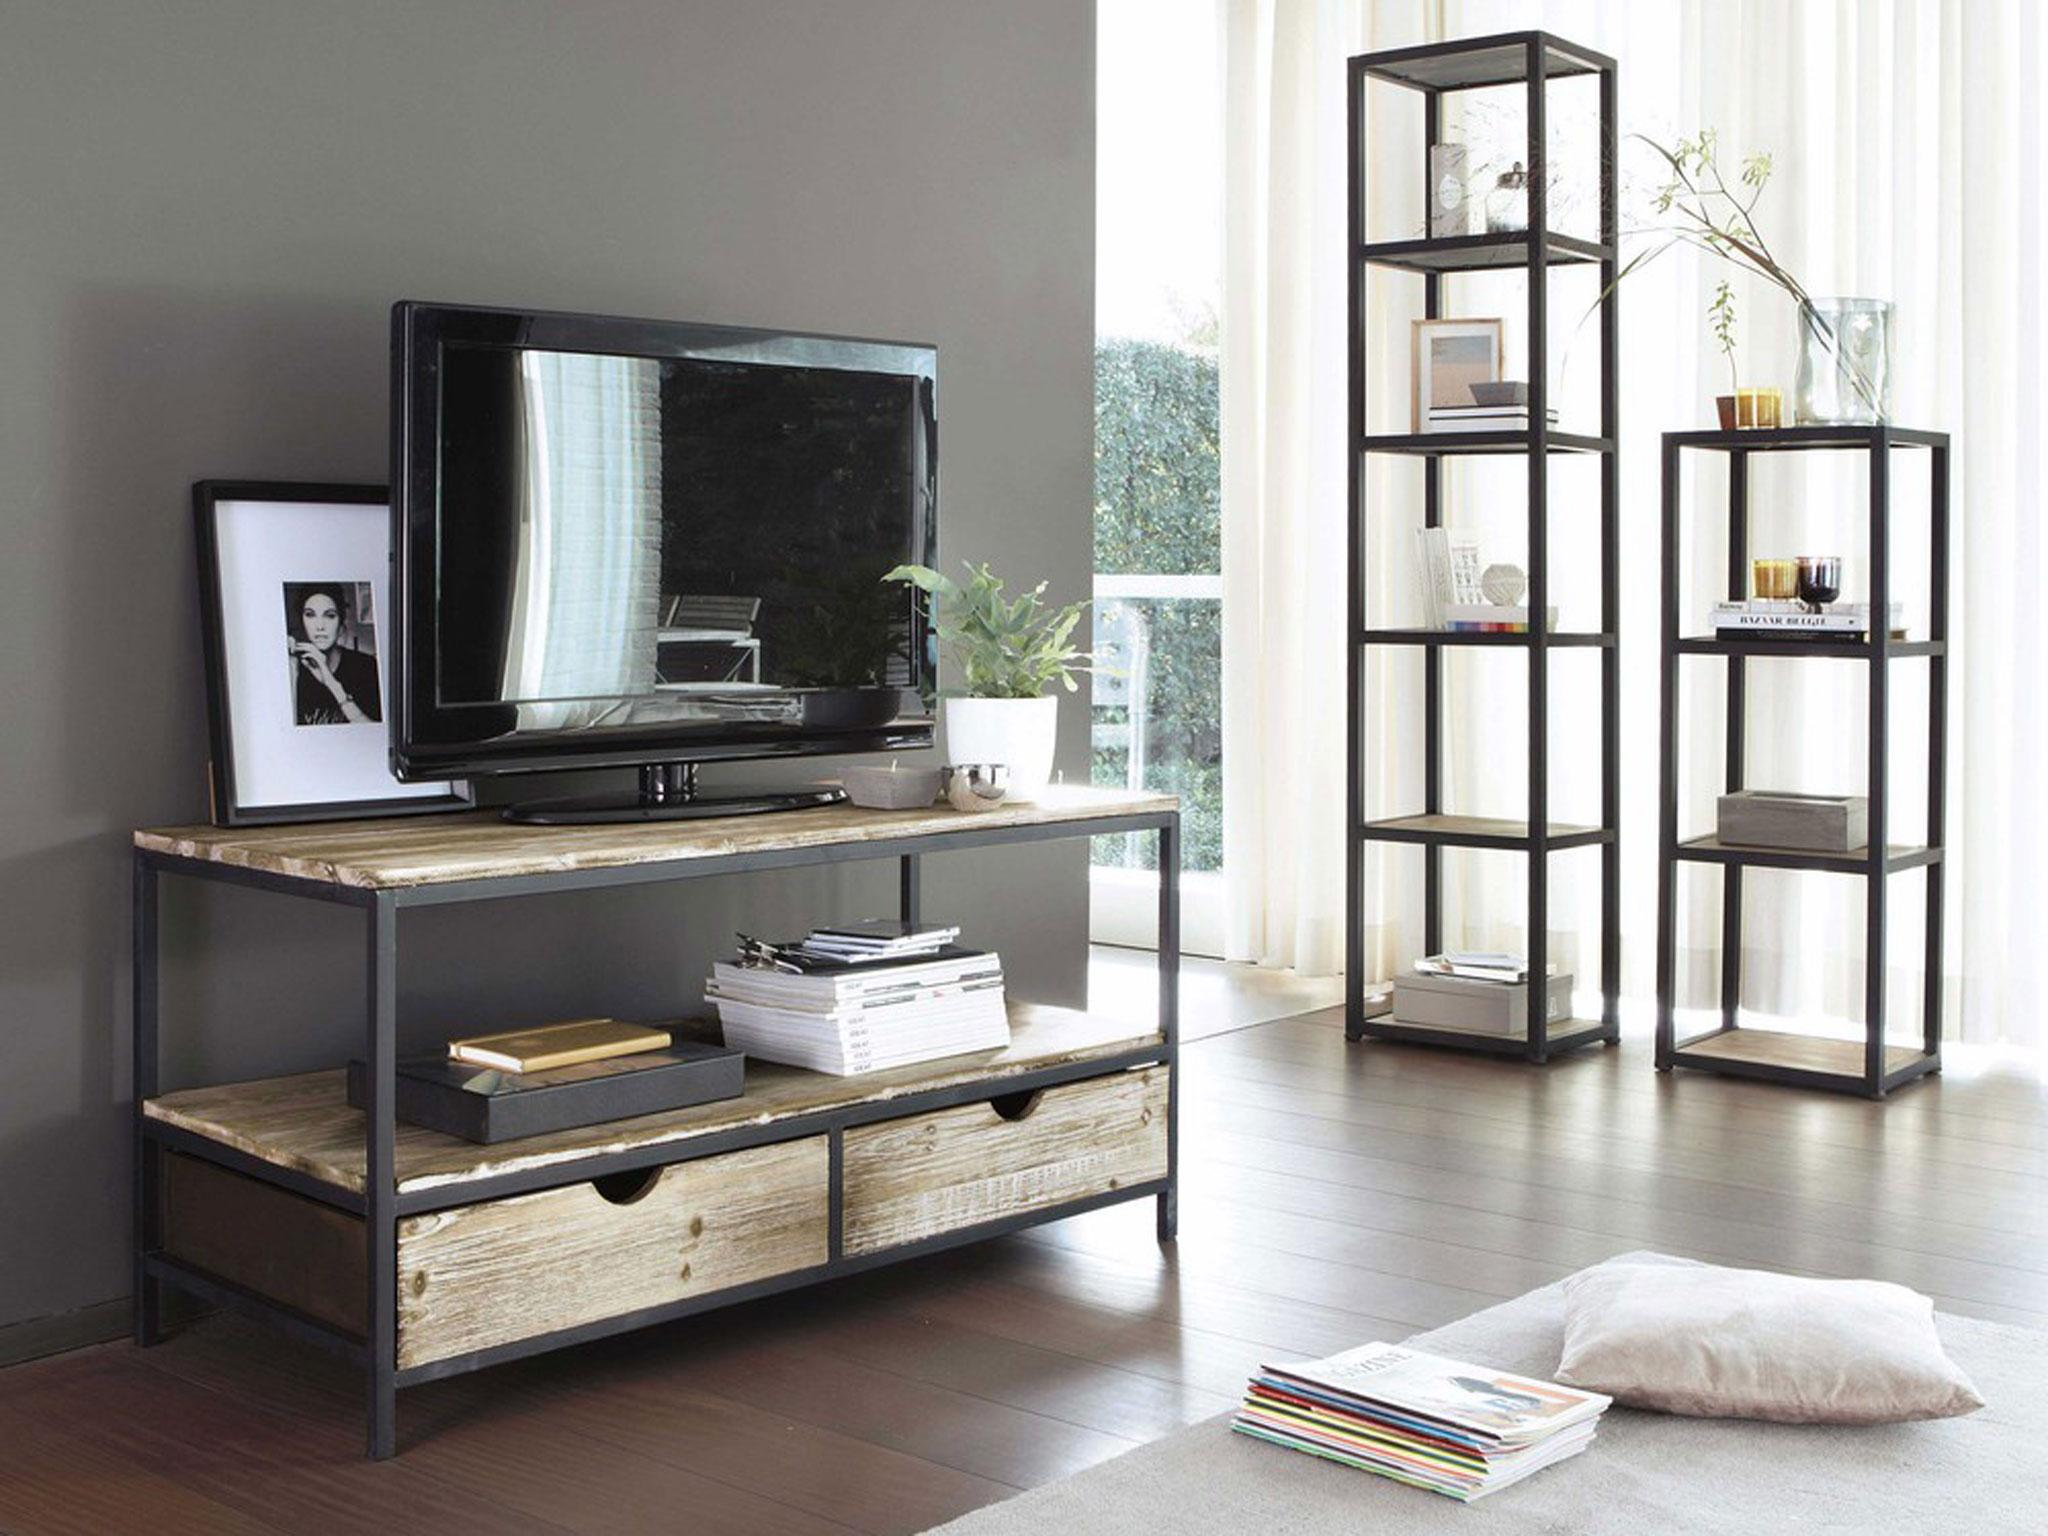 rooms console and living designs collections scandinavian to bol room media go stands ms tv wood storage natural